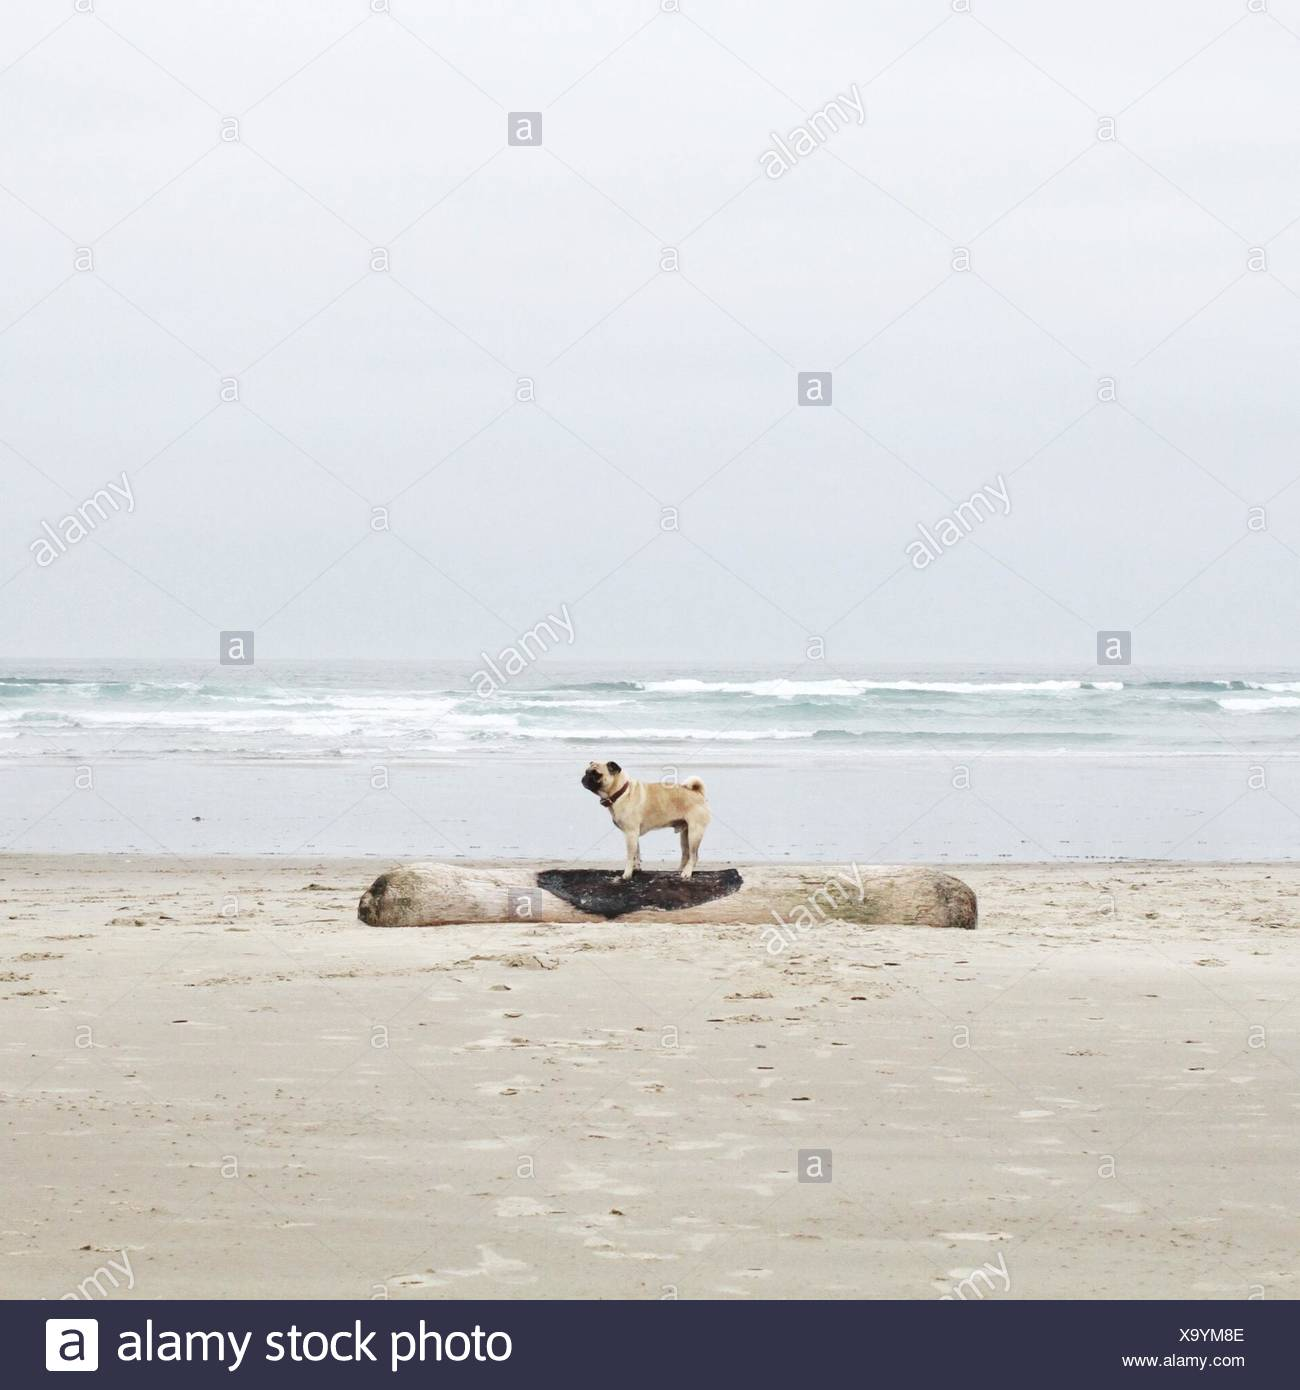 Side view of pug dog standing on driftwood on beach - Stock Image